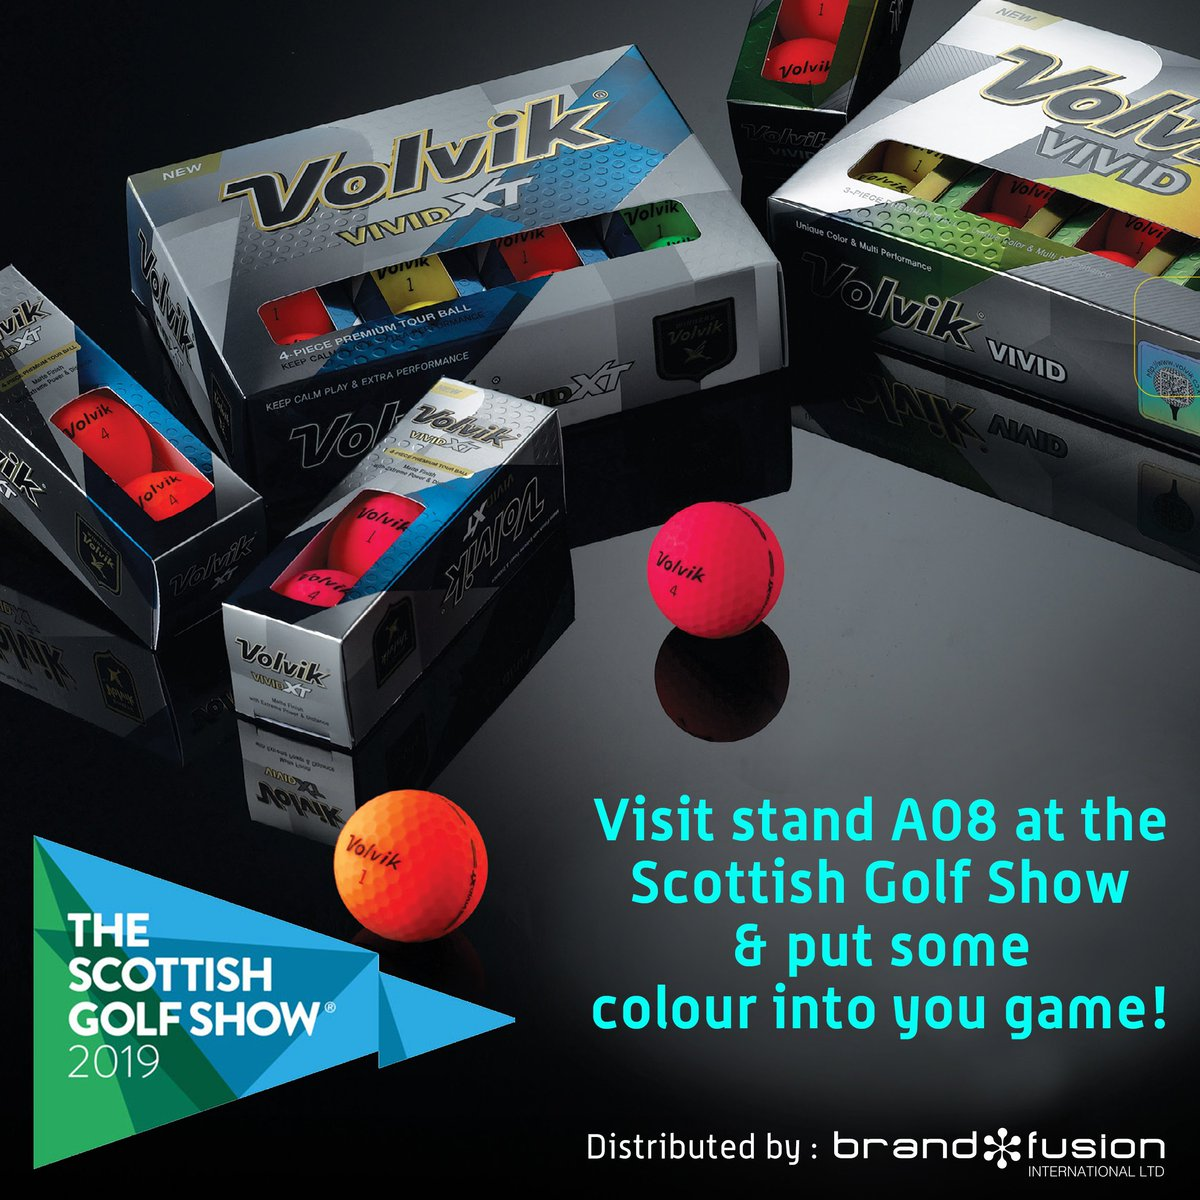 Attending the @ScotGolfShow ?..Visit STAND A08 and put some colour into your game with #VOLVIK! #ChangeTheGame #ScotGolfShow #golf ⛳️🏴🏌️♀️🏌️♂️